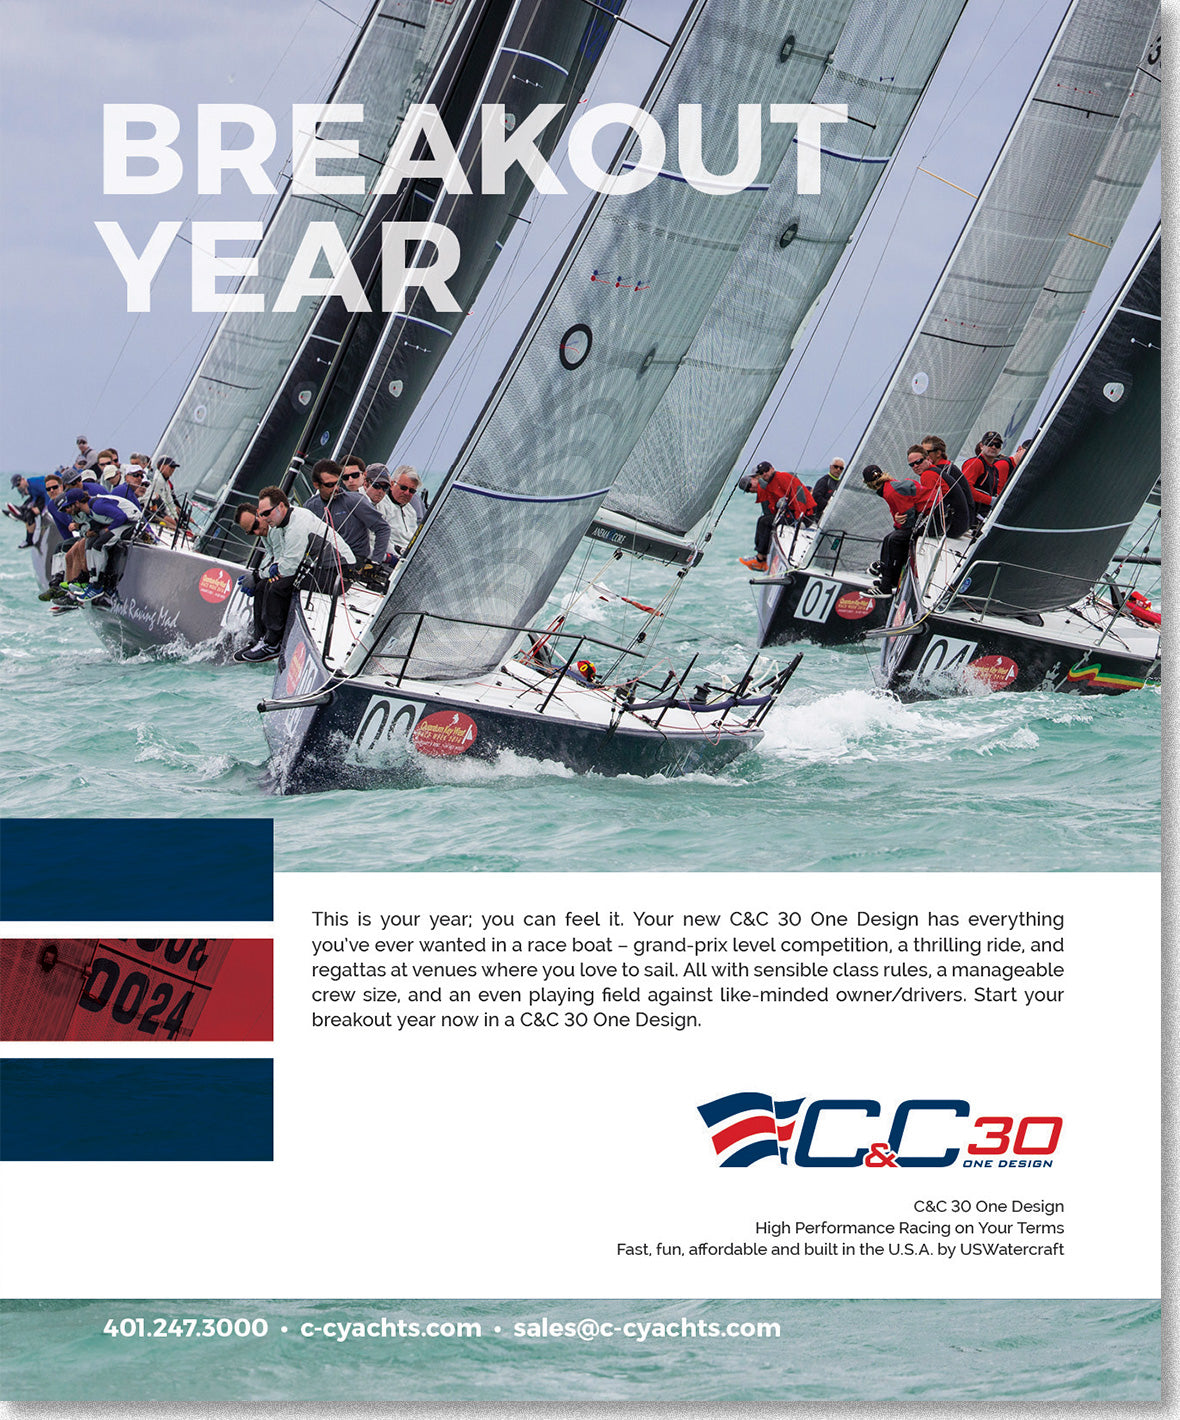 CC30 One Design Ad, a fleet of yachts with Breakout Year Headline